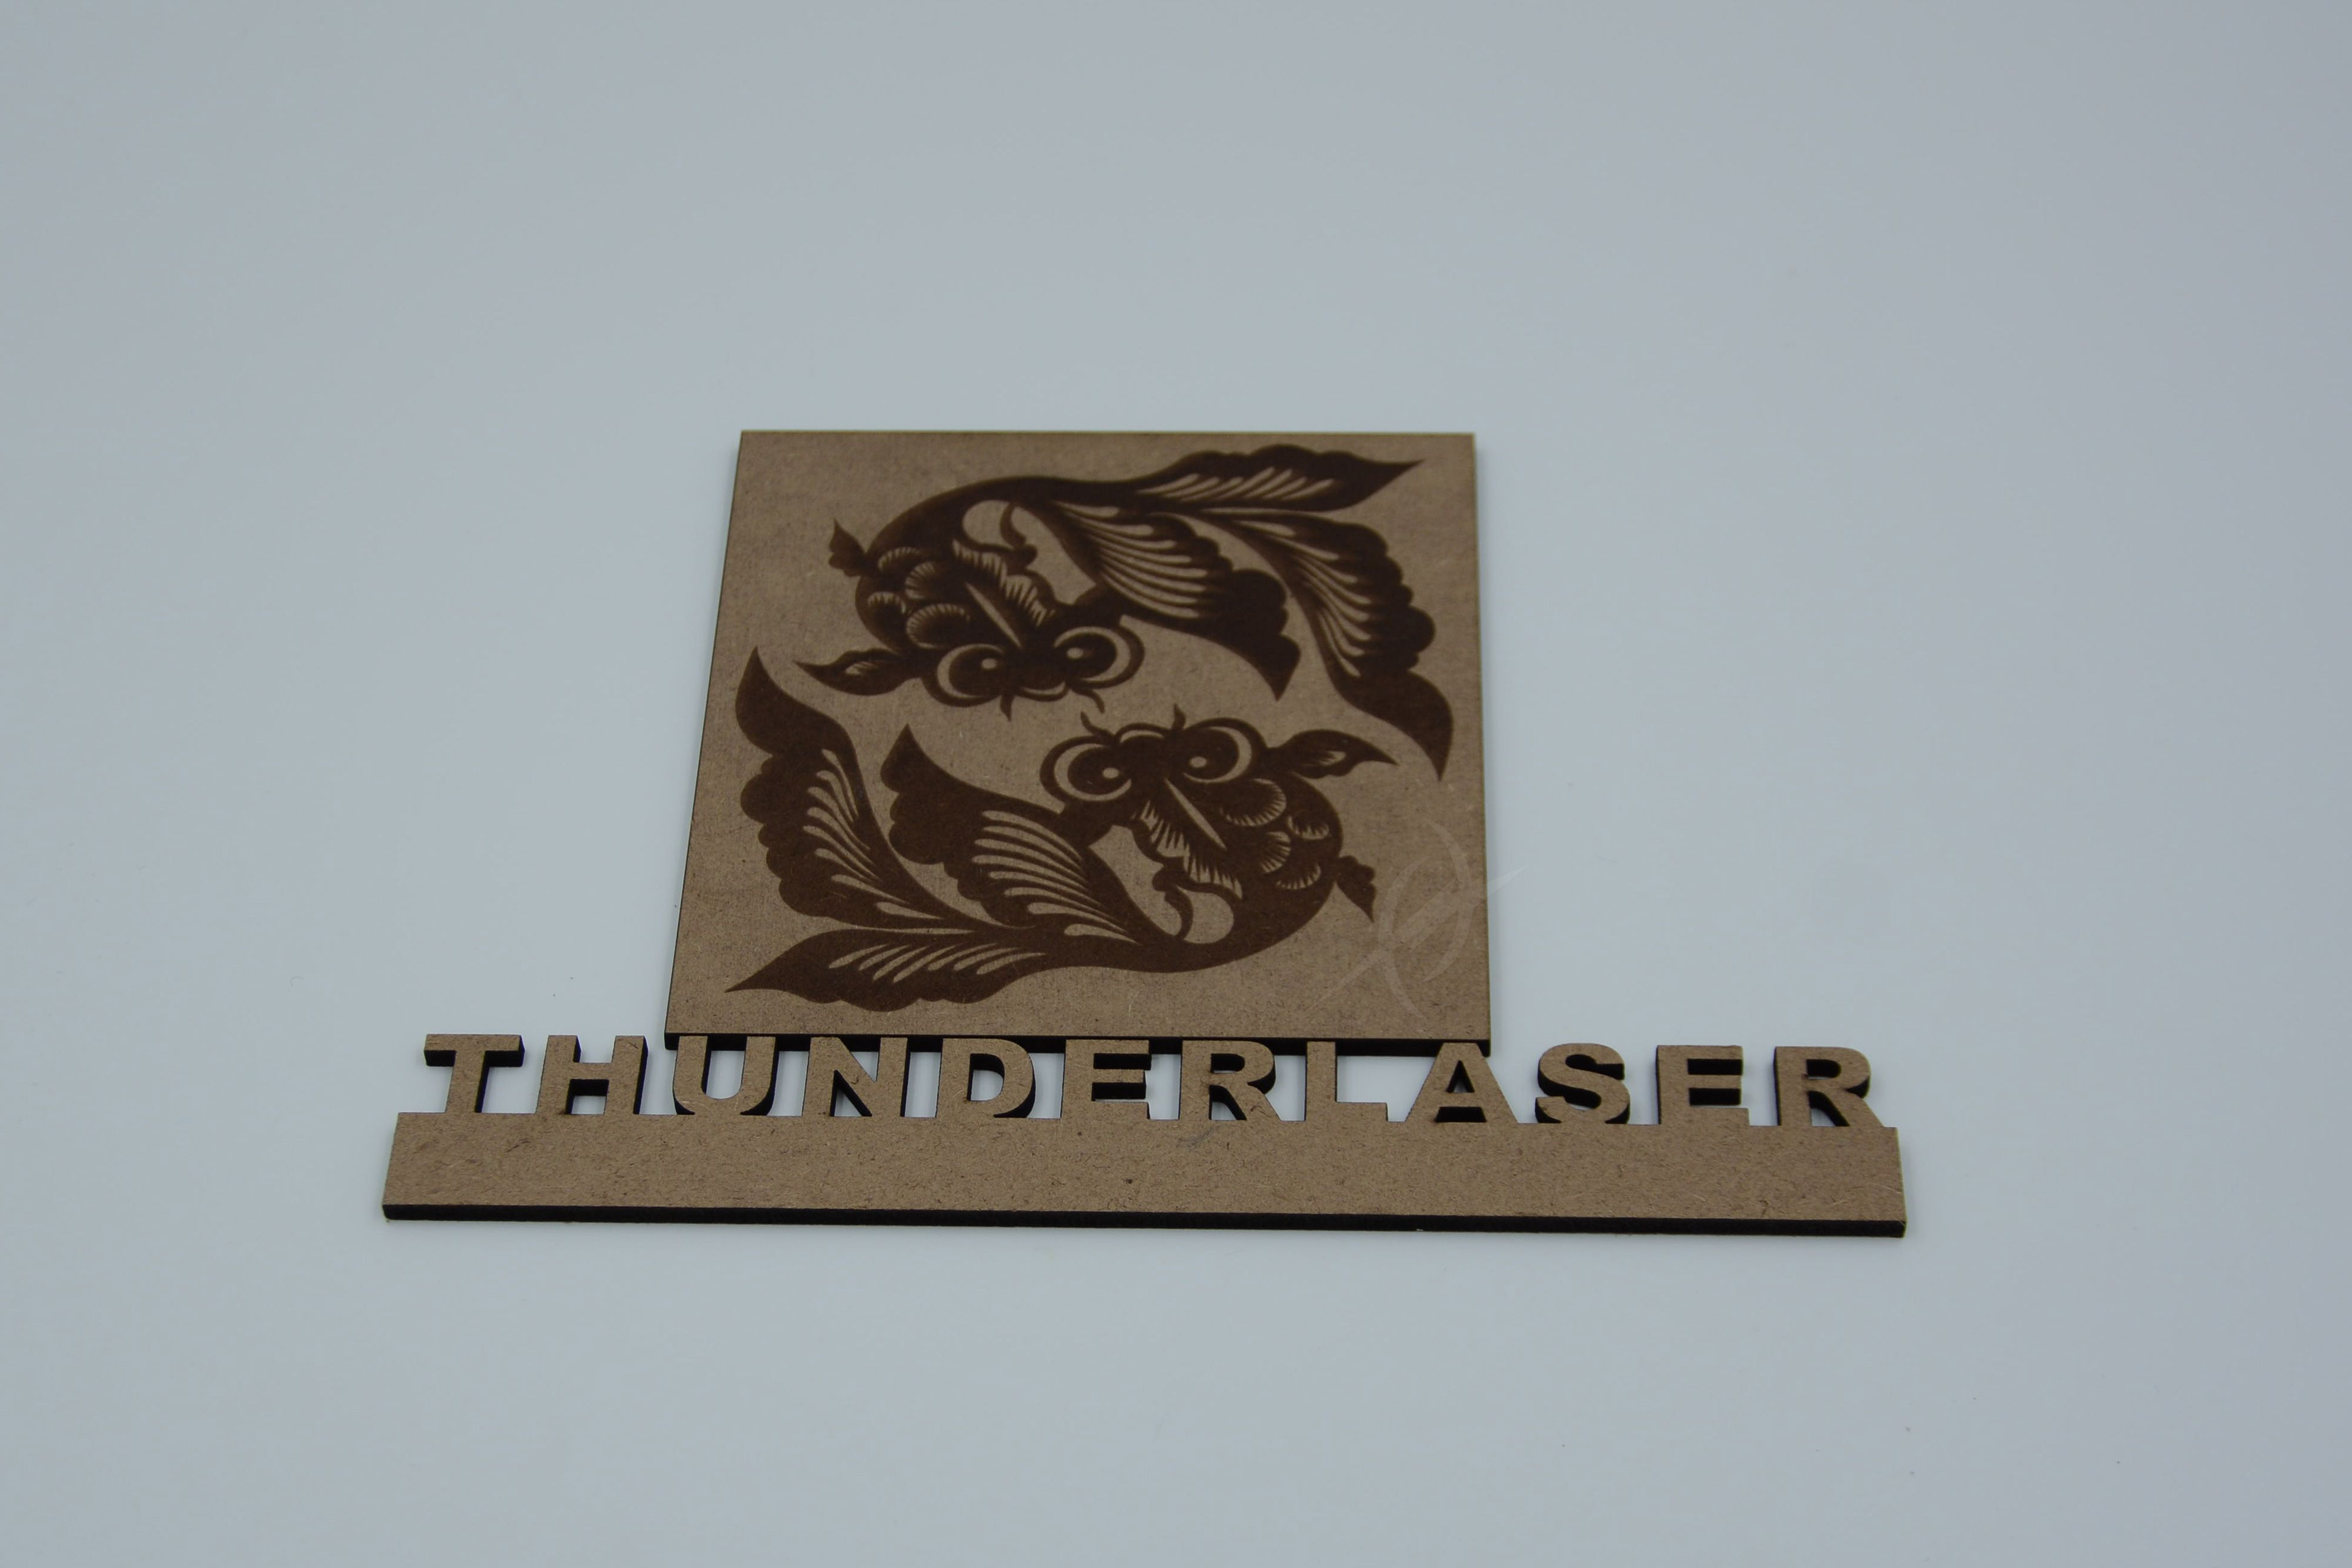 3D Engraver .The Box has 3 large Goldfish in various positions of activity. Put the WOW factor back into your gift giving with this great looking laser engraved wooden pen and box combination. The laser engraving is performed by Wooden Pen Works, and is designed to give your pen case an unsurpassed 3 dimensional effect.